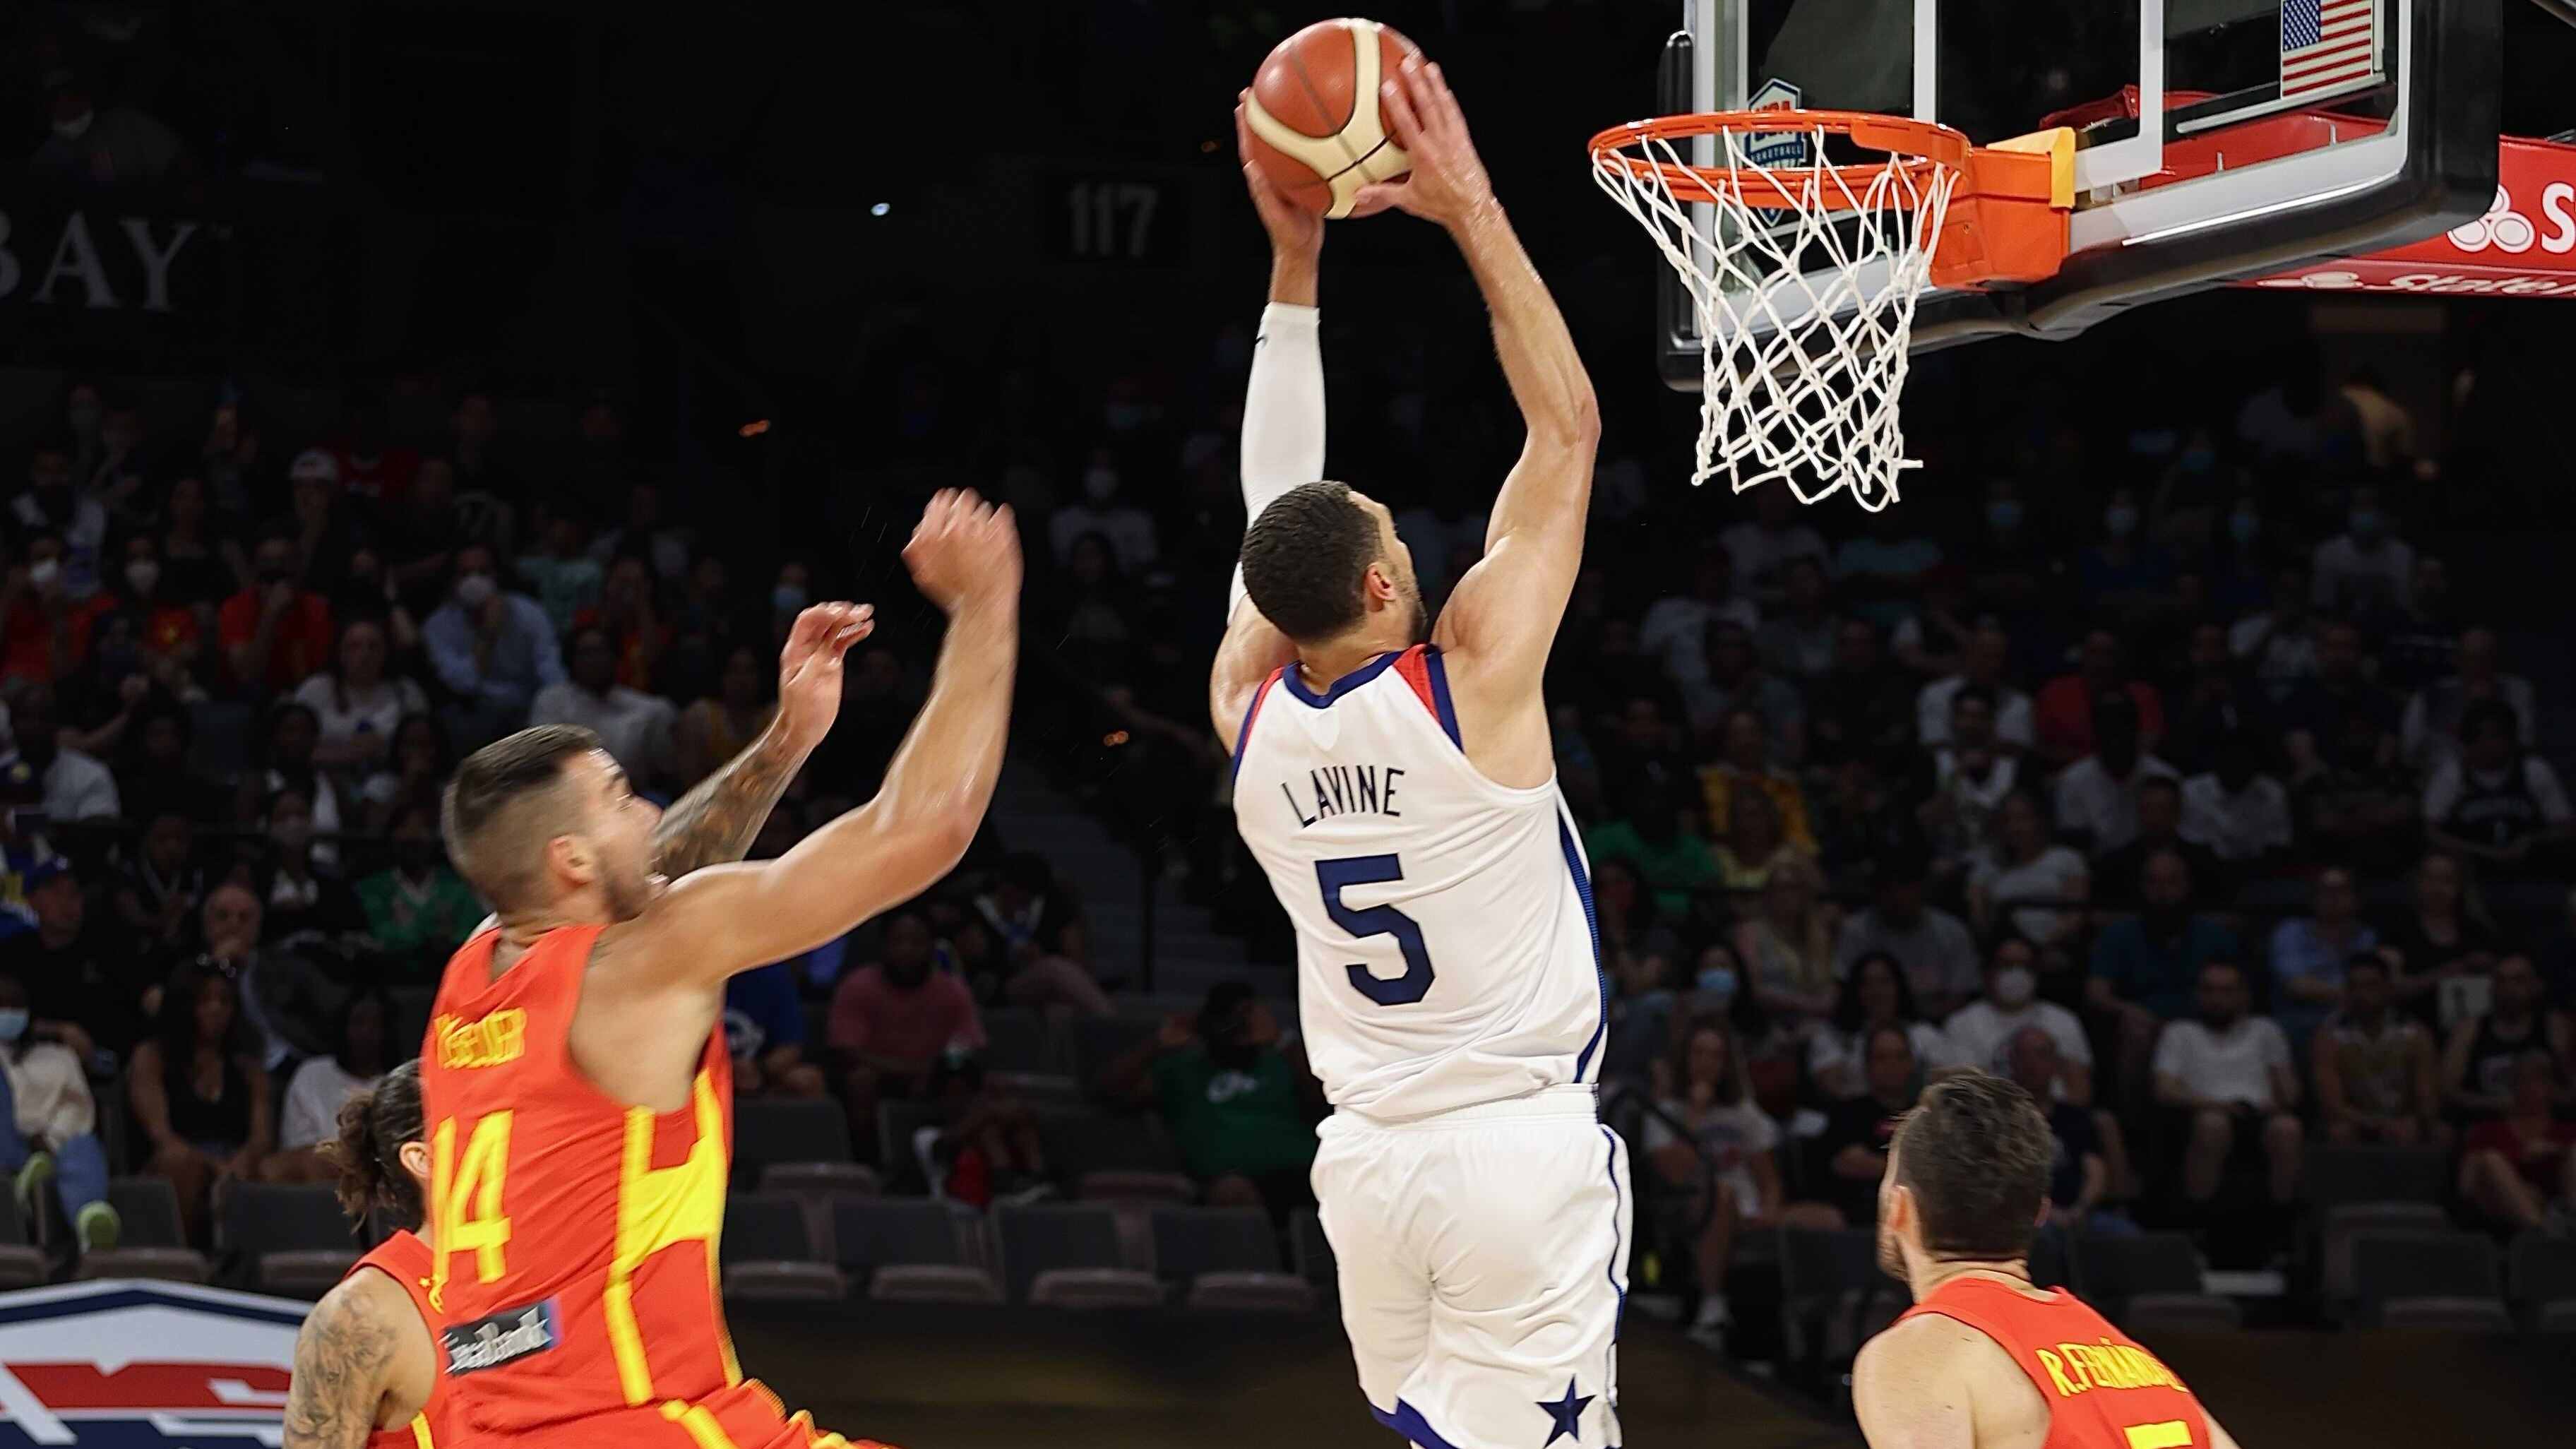 Lavine dunking it home.